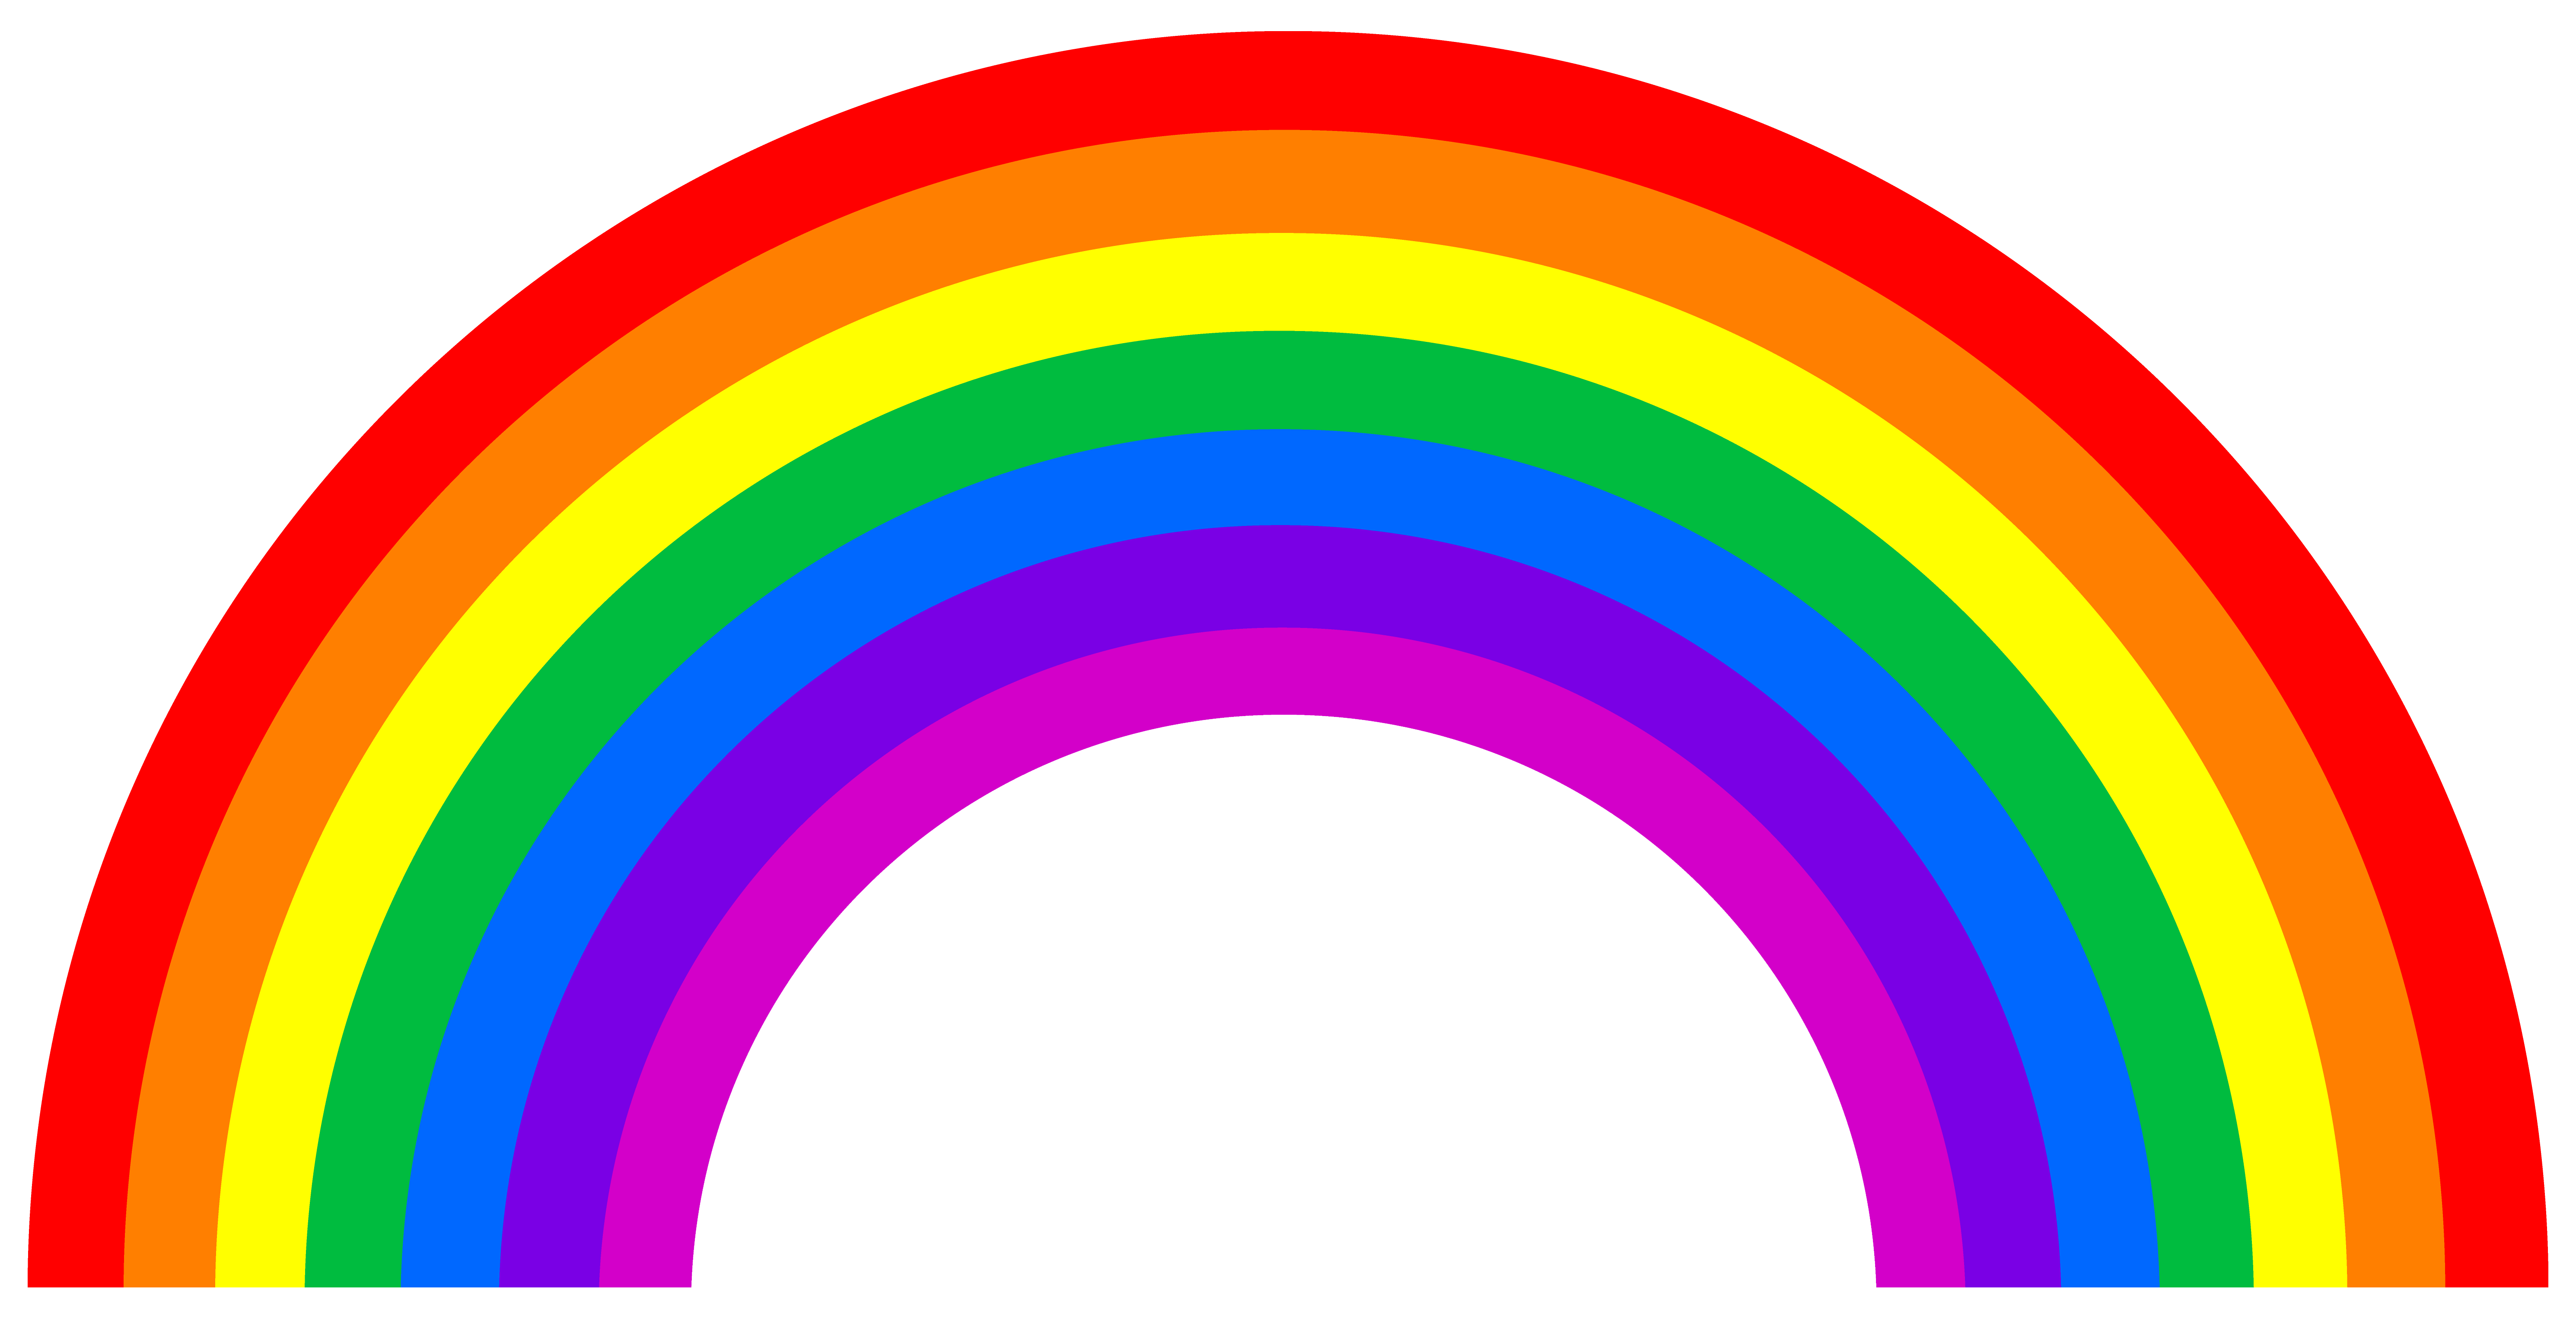 rainbow vector clipart best free use clip art for commercial use free use clip art microsoft